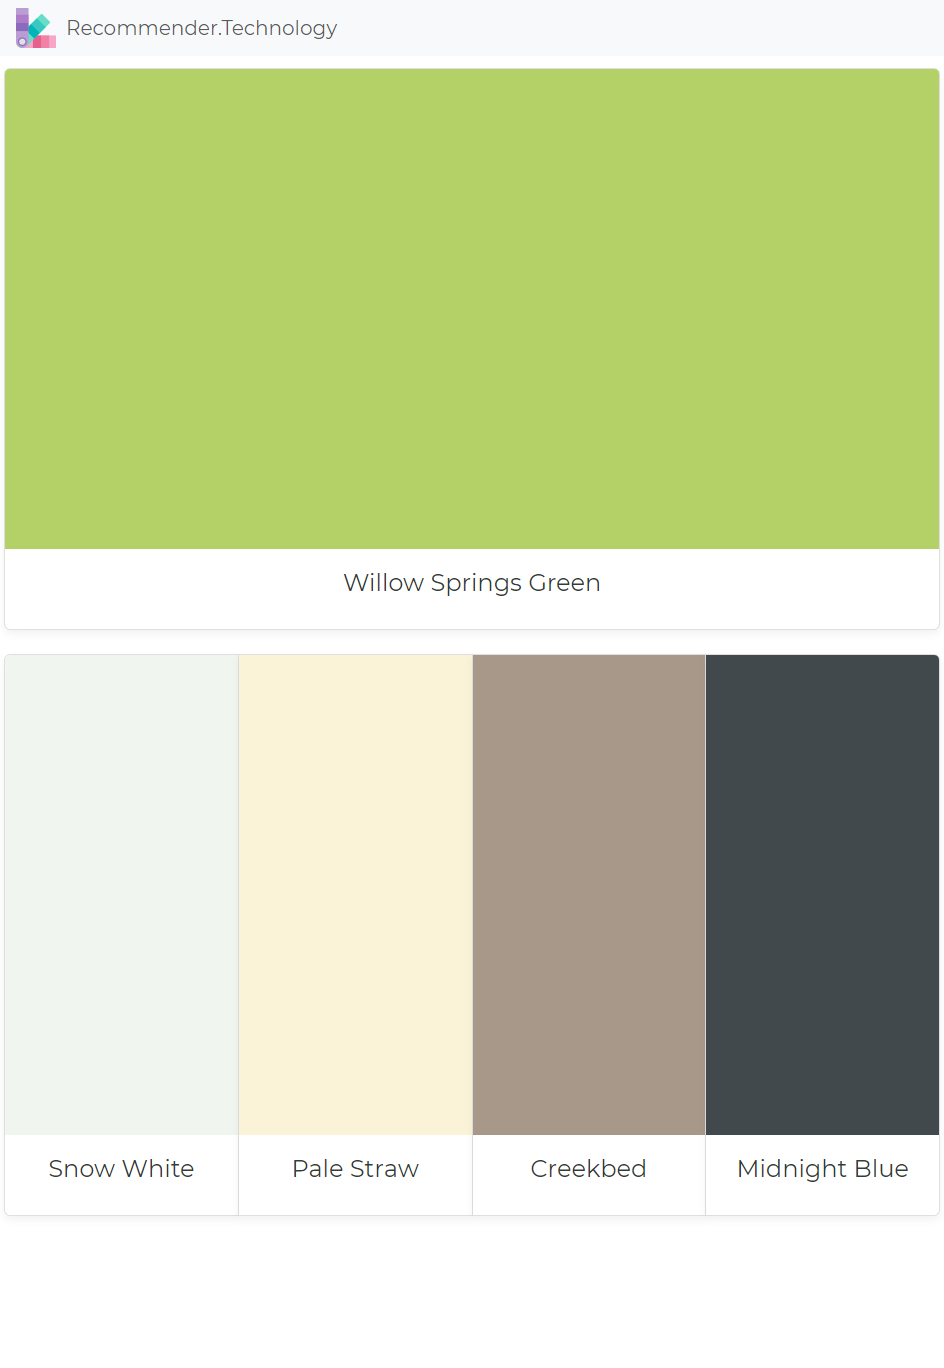 Paint Color Pallets Willow Springs Green Snow White Pale Straw Creekbed Midnight Blue